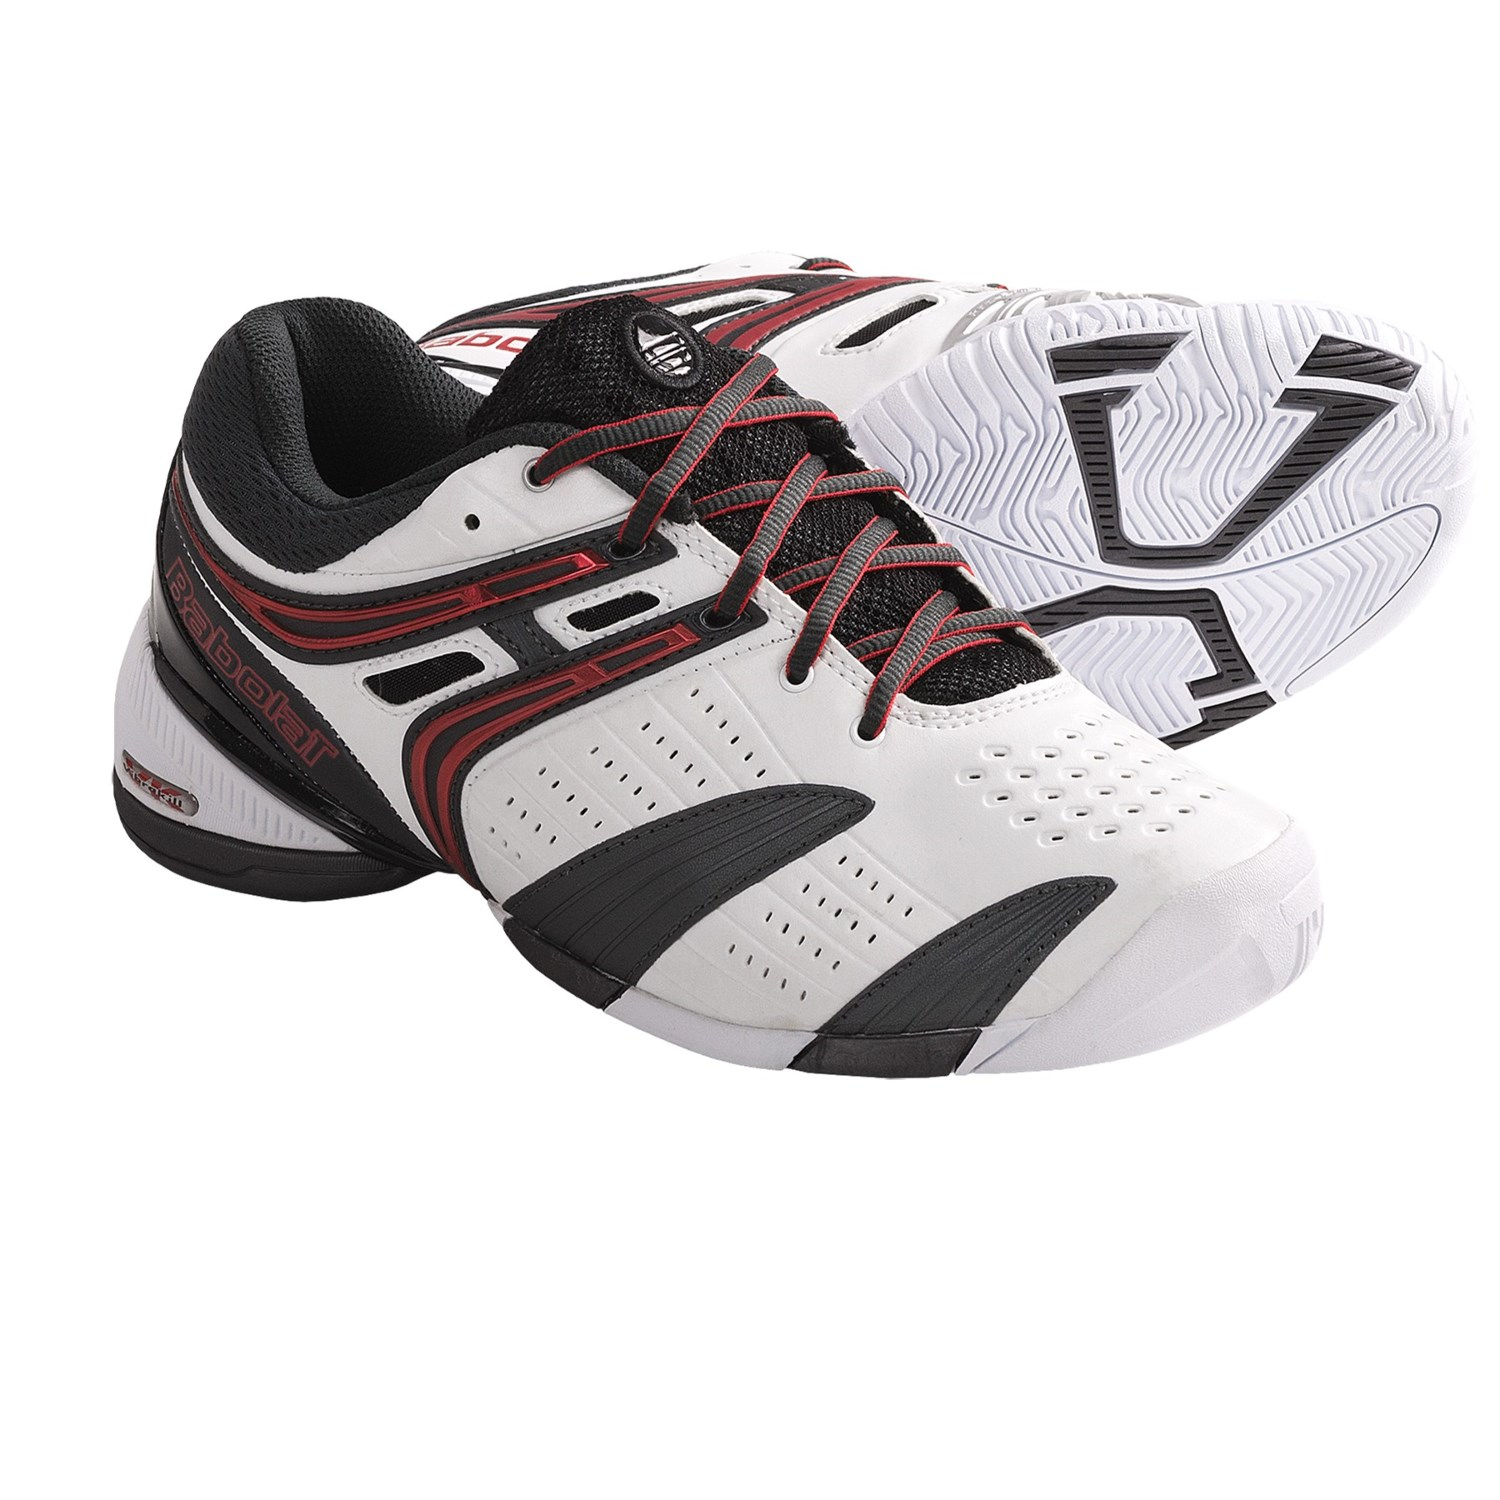 Shop for Men's Tennis Shoes, Athletic Shoes, and Sneakers at Tennis Express! Take advantage of our FREE shipping policy, and take the court in confidence.